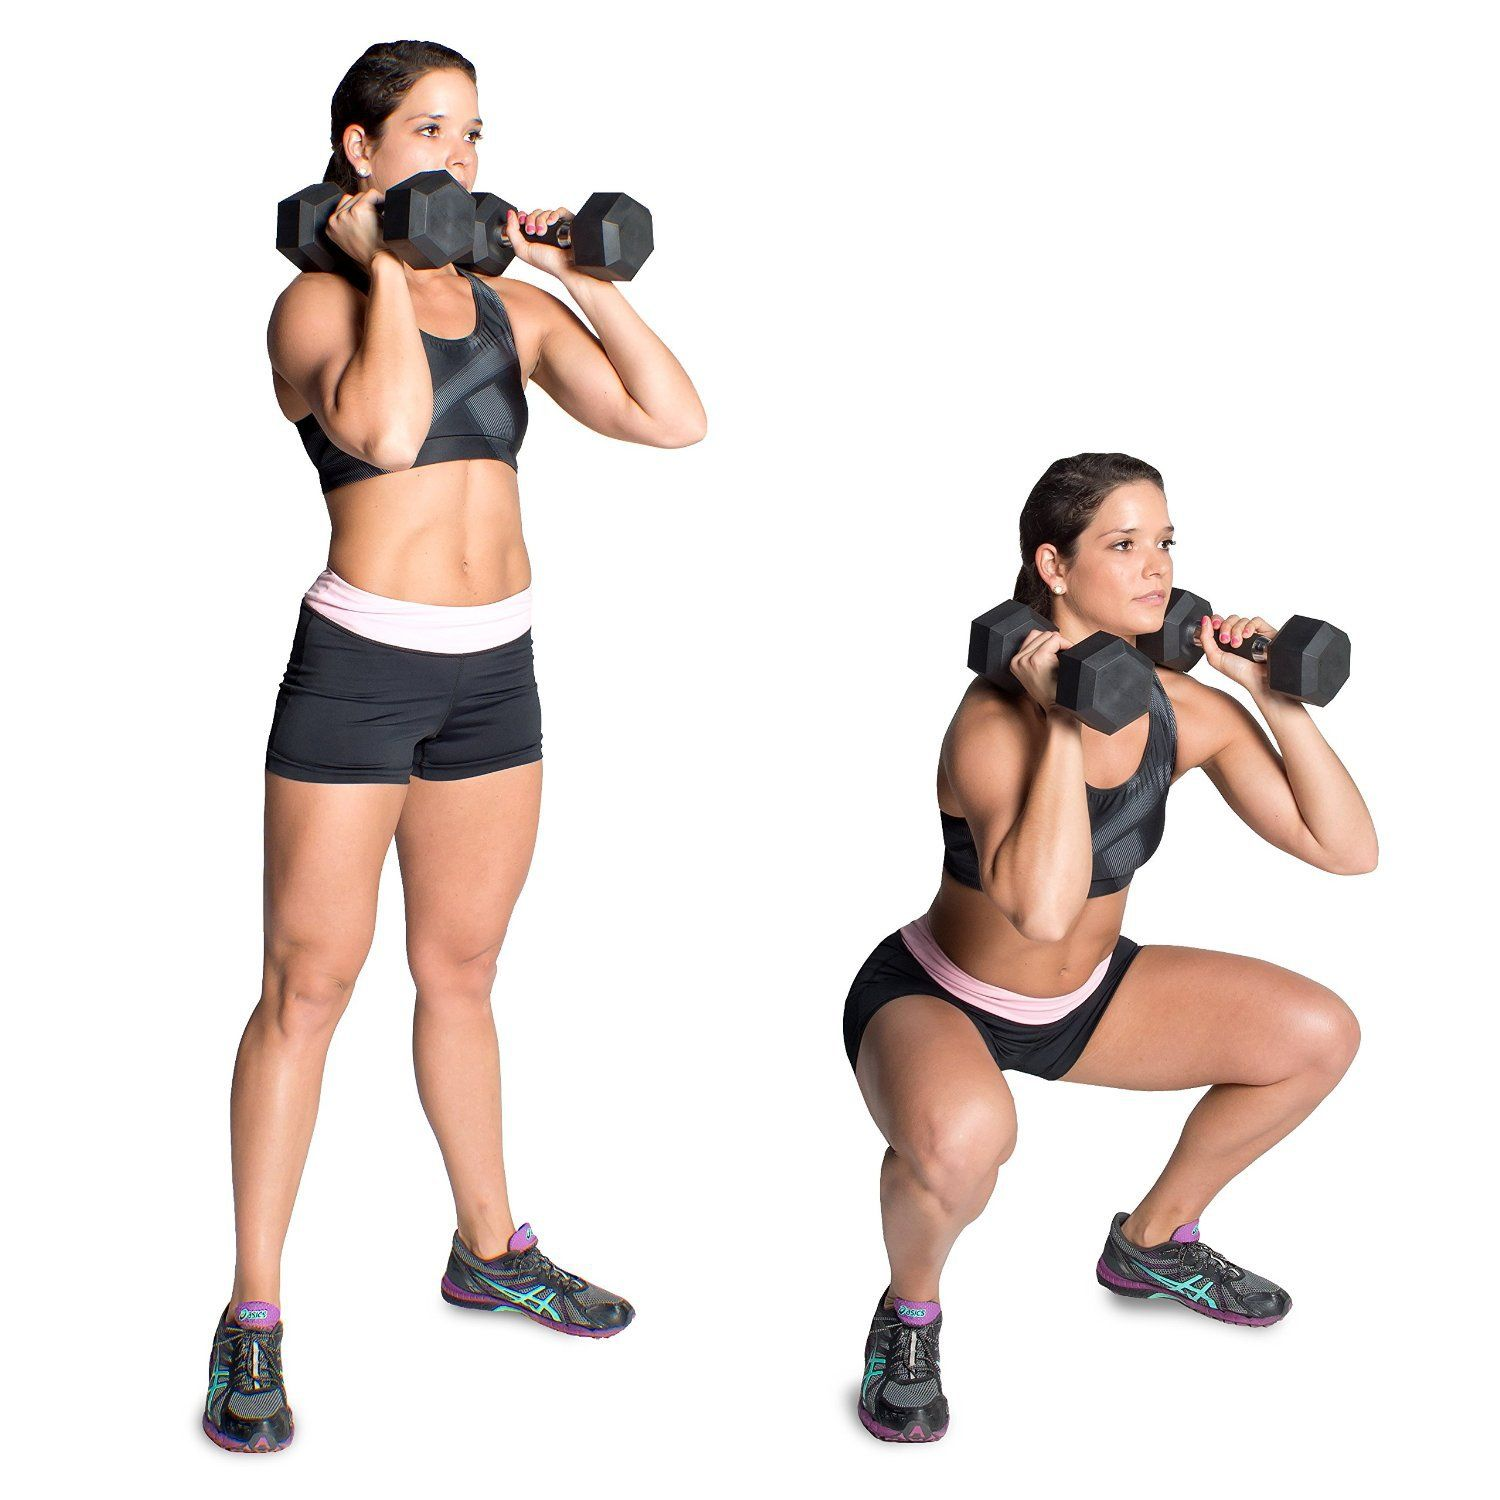 Who Says Home Gyms Have To Be Expensive Here Are 8 Inexpensive Home Gym Essentials To Kick Start Your Way To A Healthier Life Dumbbells At Home Gym Fit Board Workouts